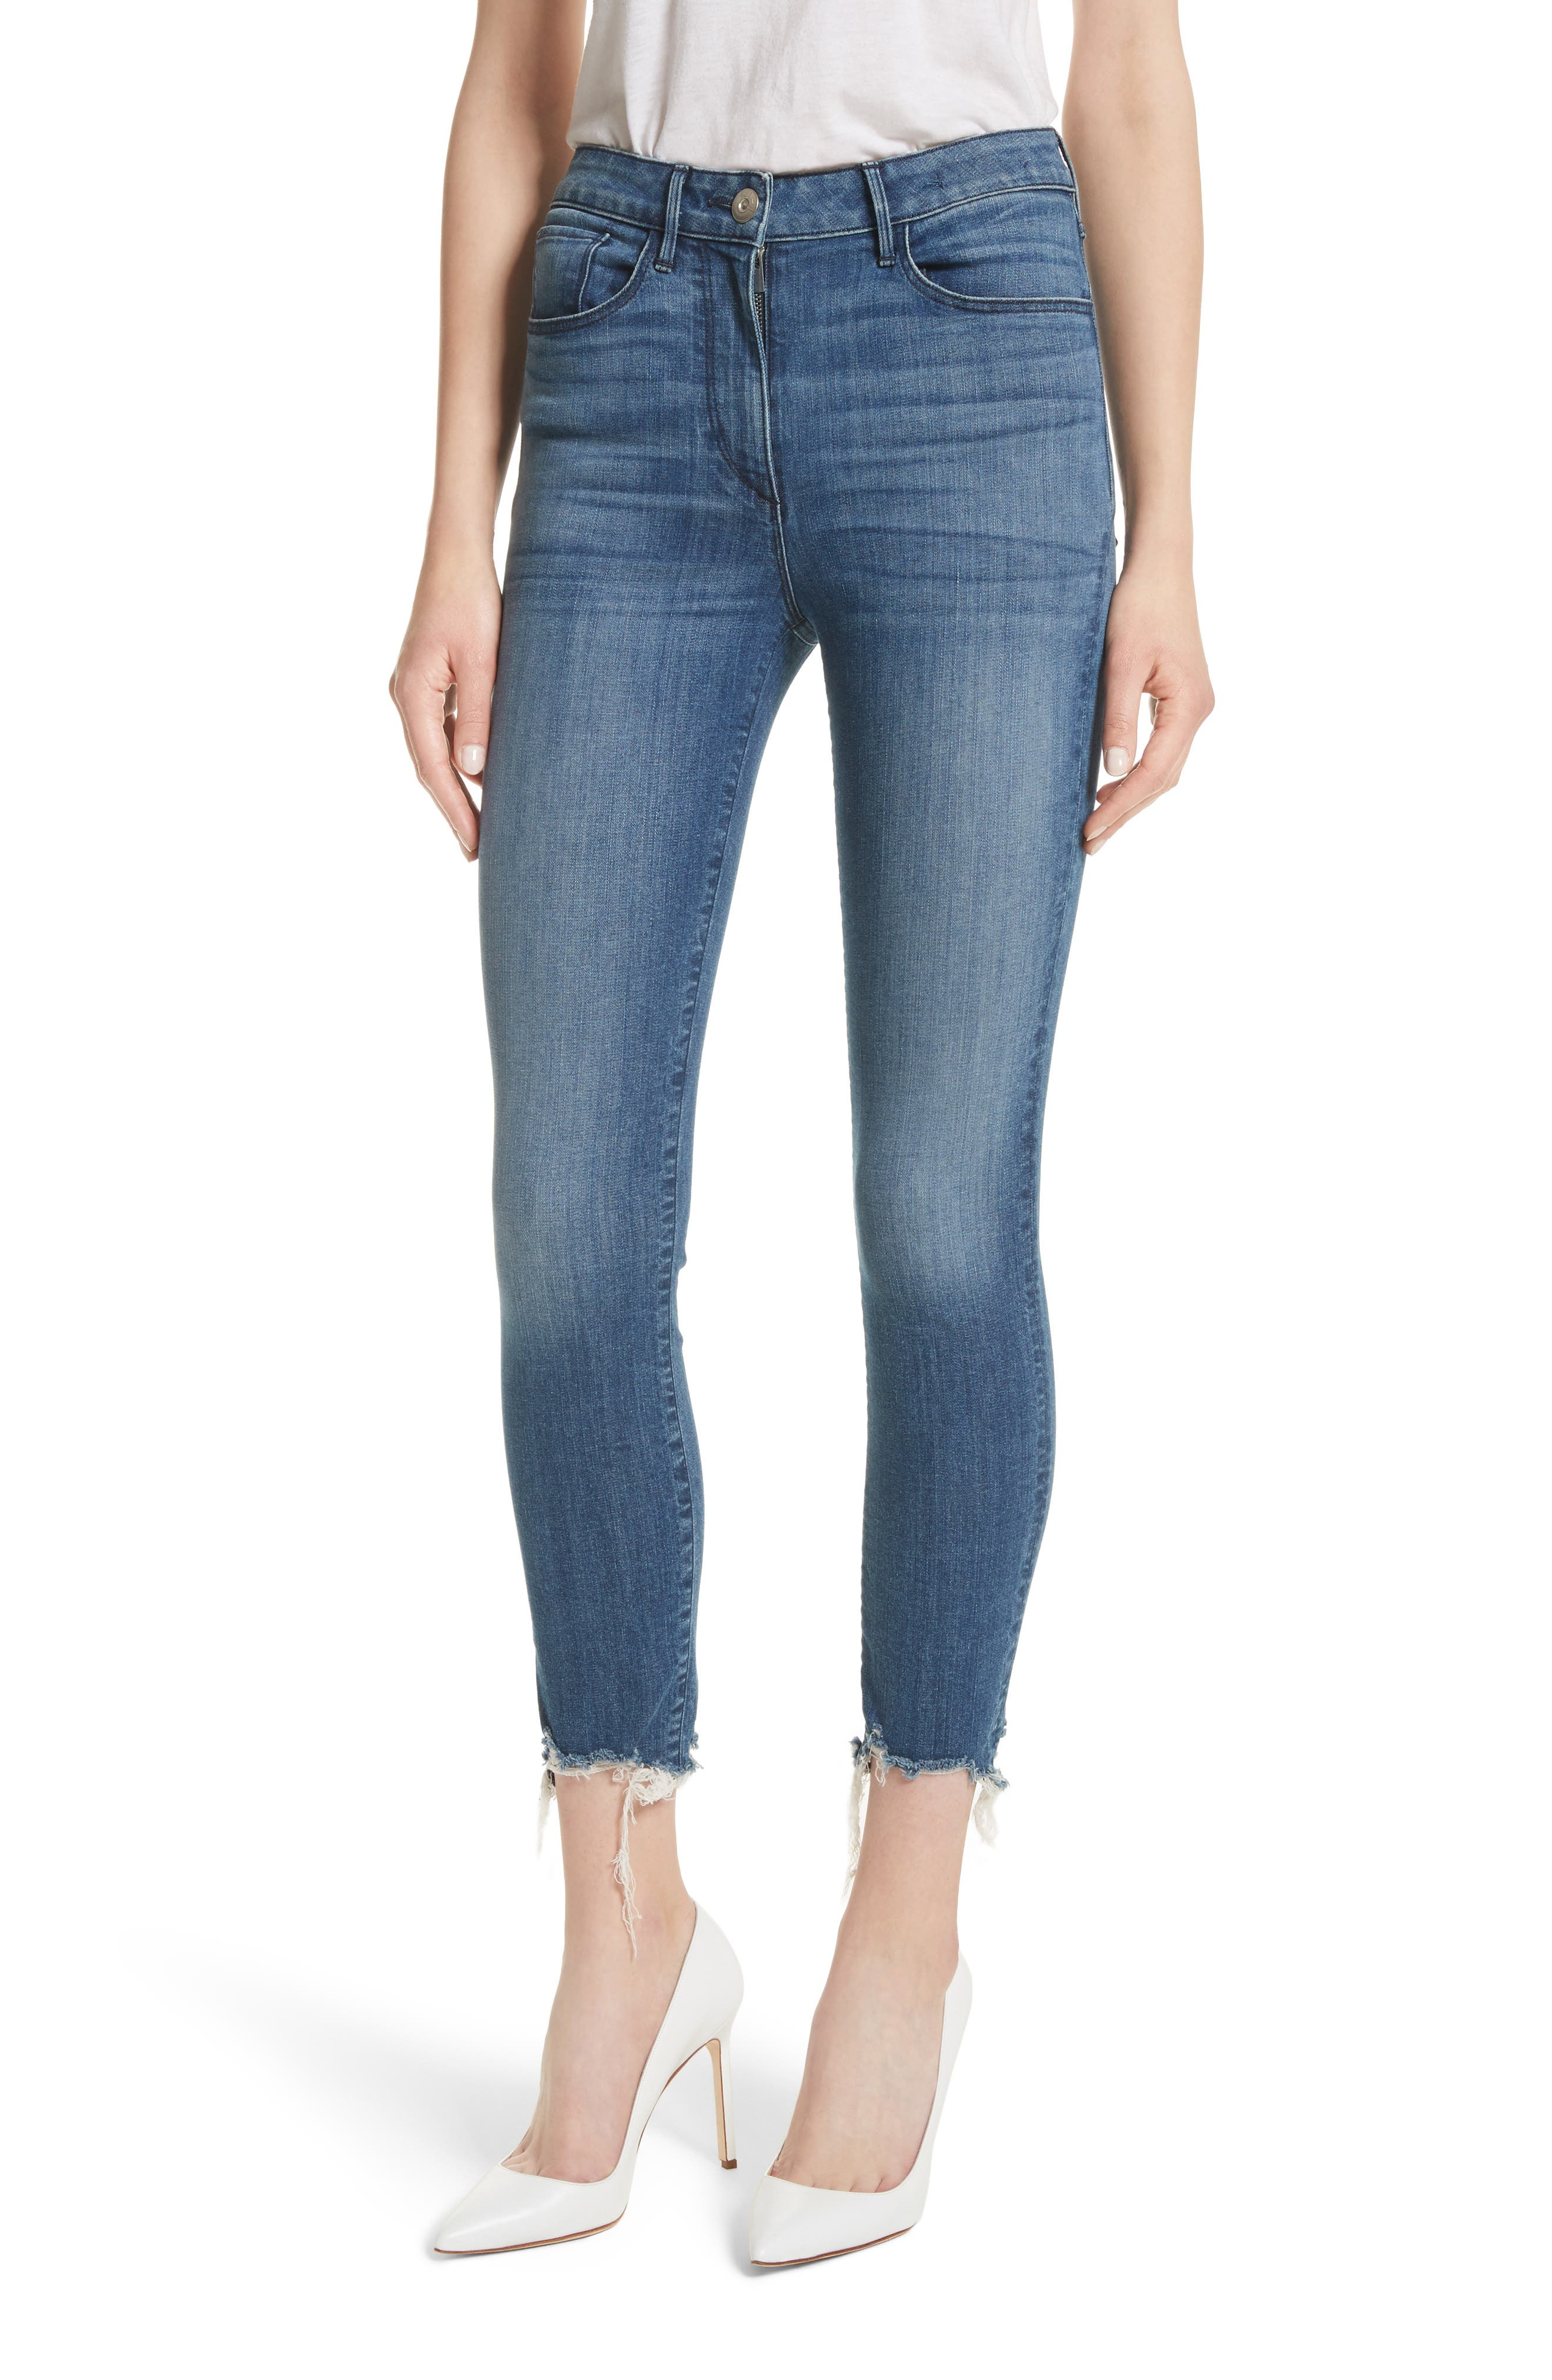 W3 Crop Skinny Jeans,                             Main thumbnail 1, color,                             Remo